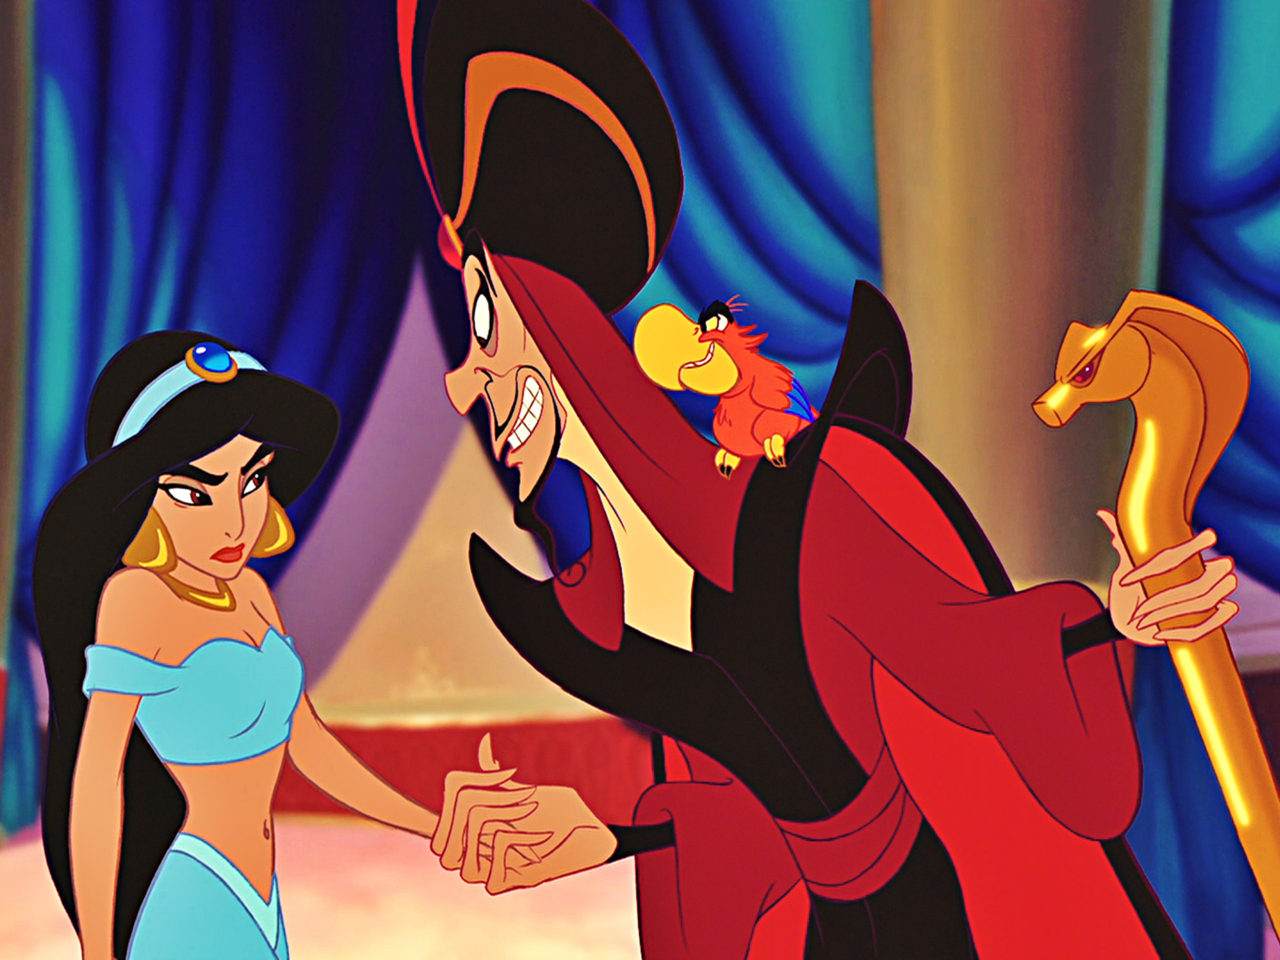 Gravity Falls Wallpaper Iphone 4 Jafar Wizard And Jasmine Princess In Aladdin Cartoon Walt